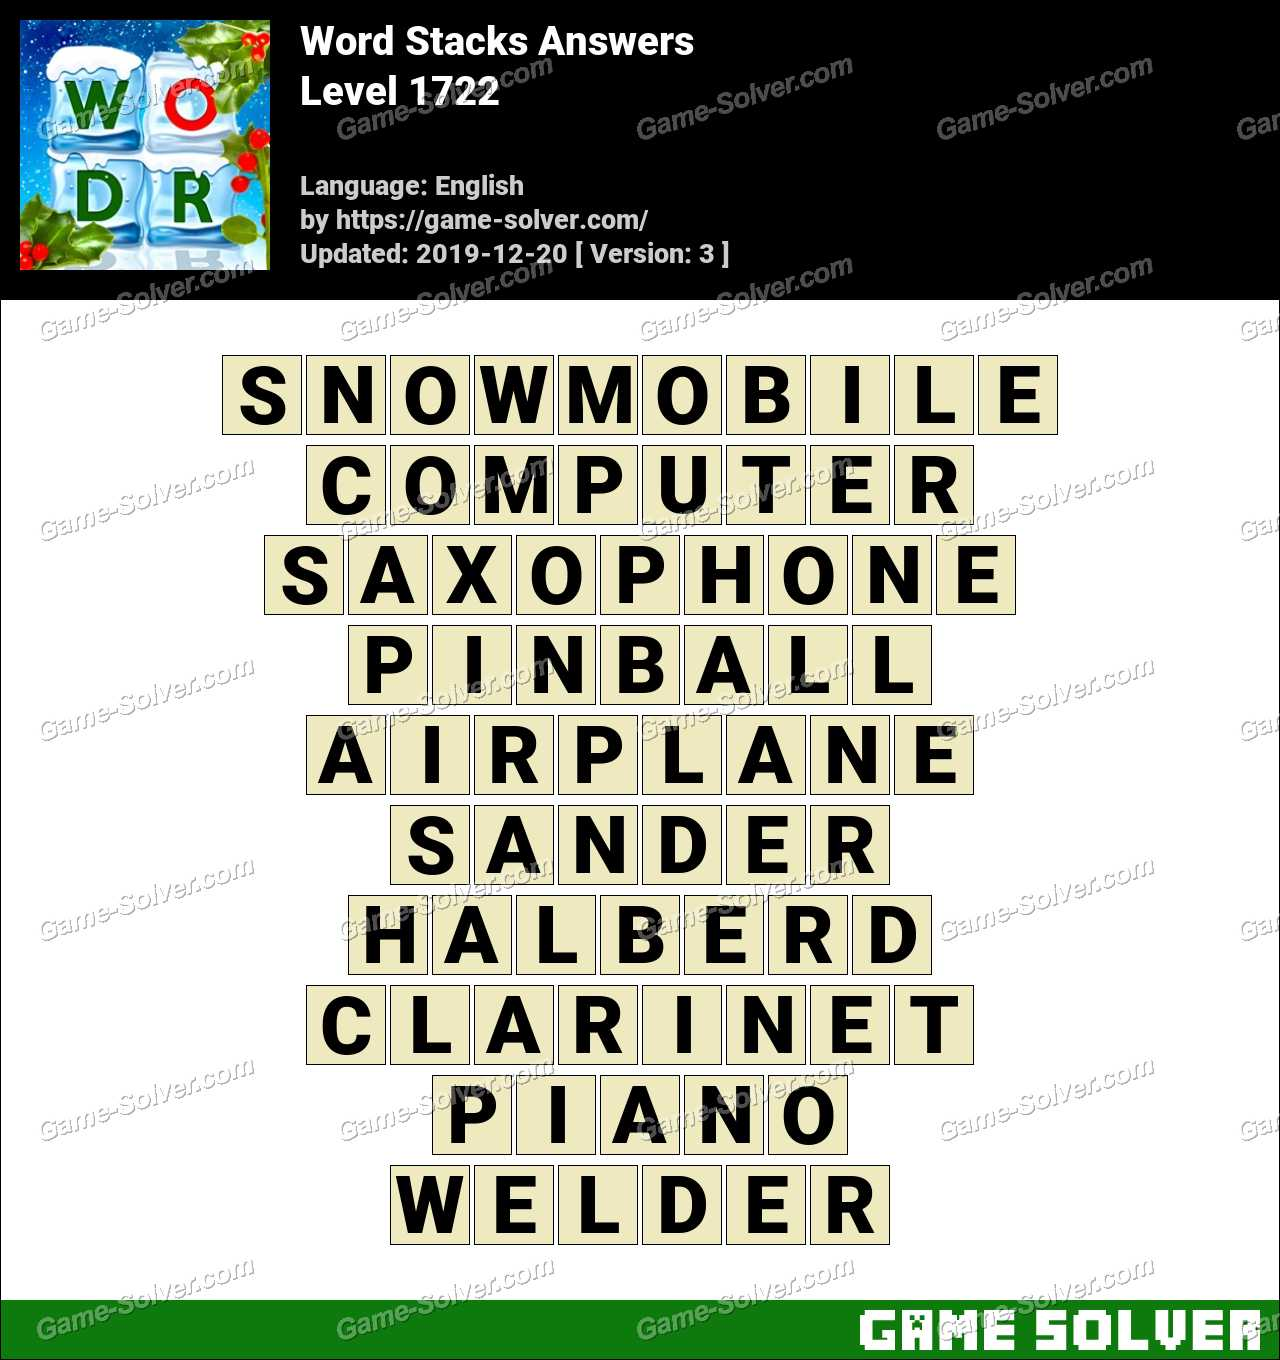 Word Stacks Level 1722 Answers